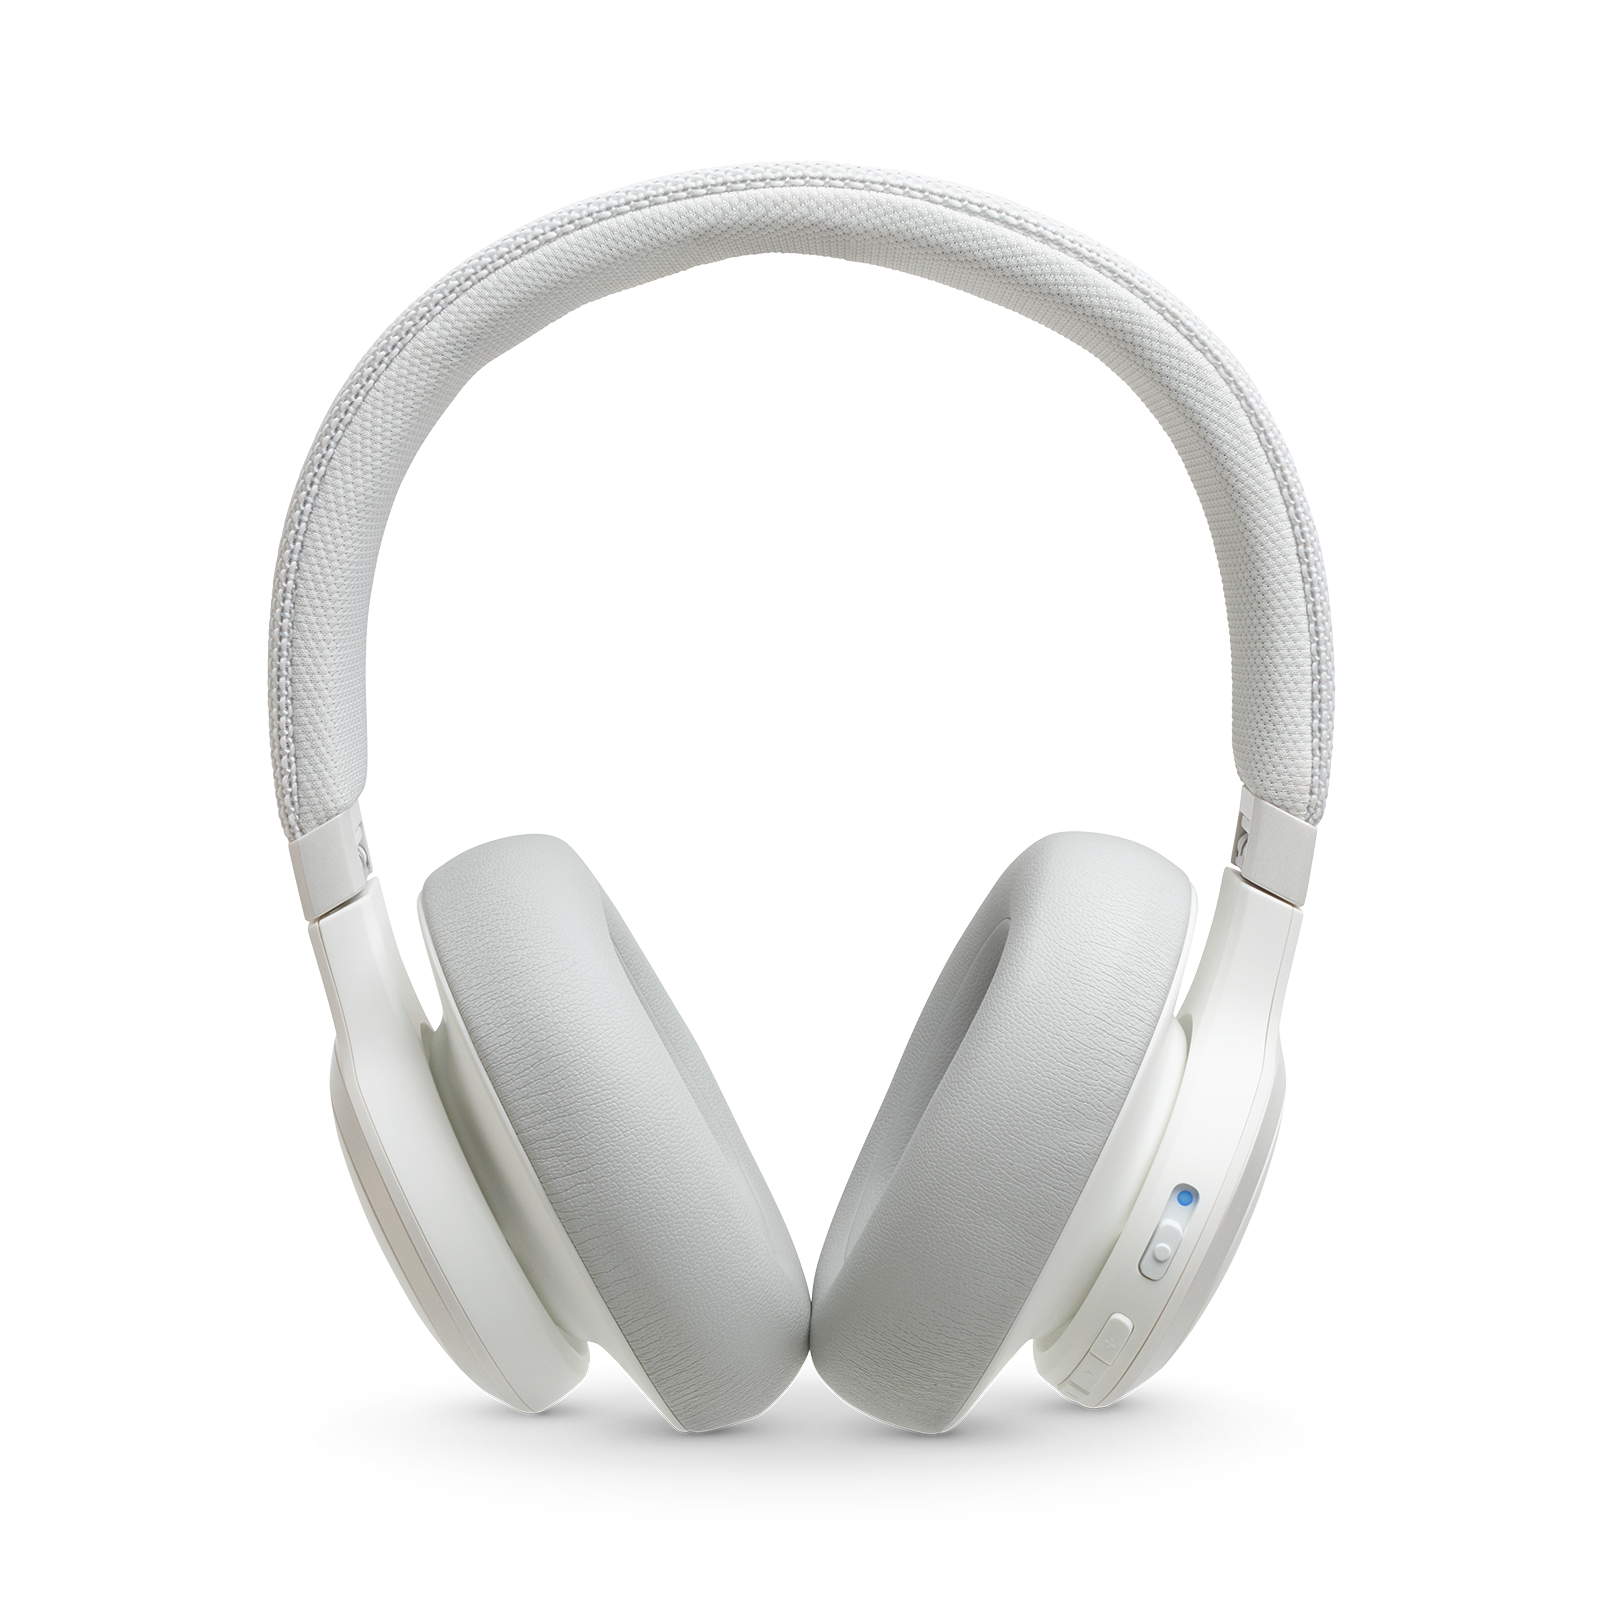 JBL LIVE 650BTNC - White - Wireless Over-Ear Noise-Cancelling Headphones - Front